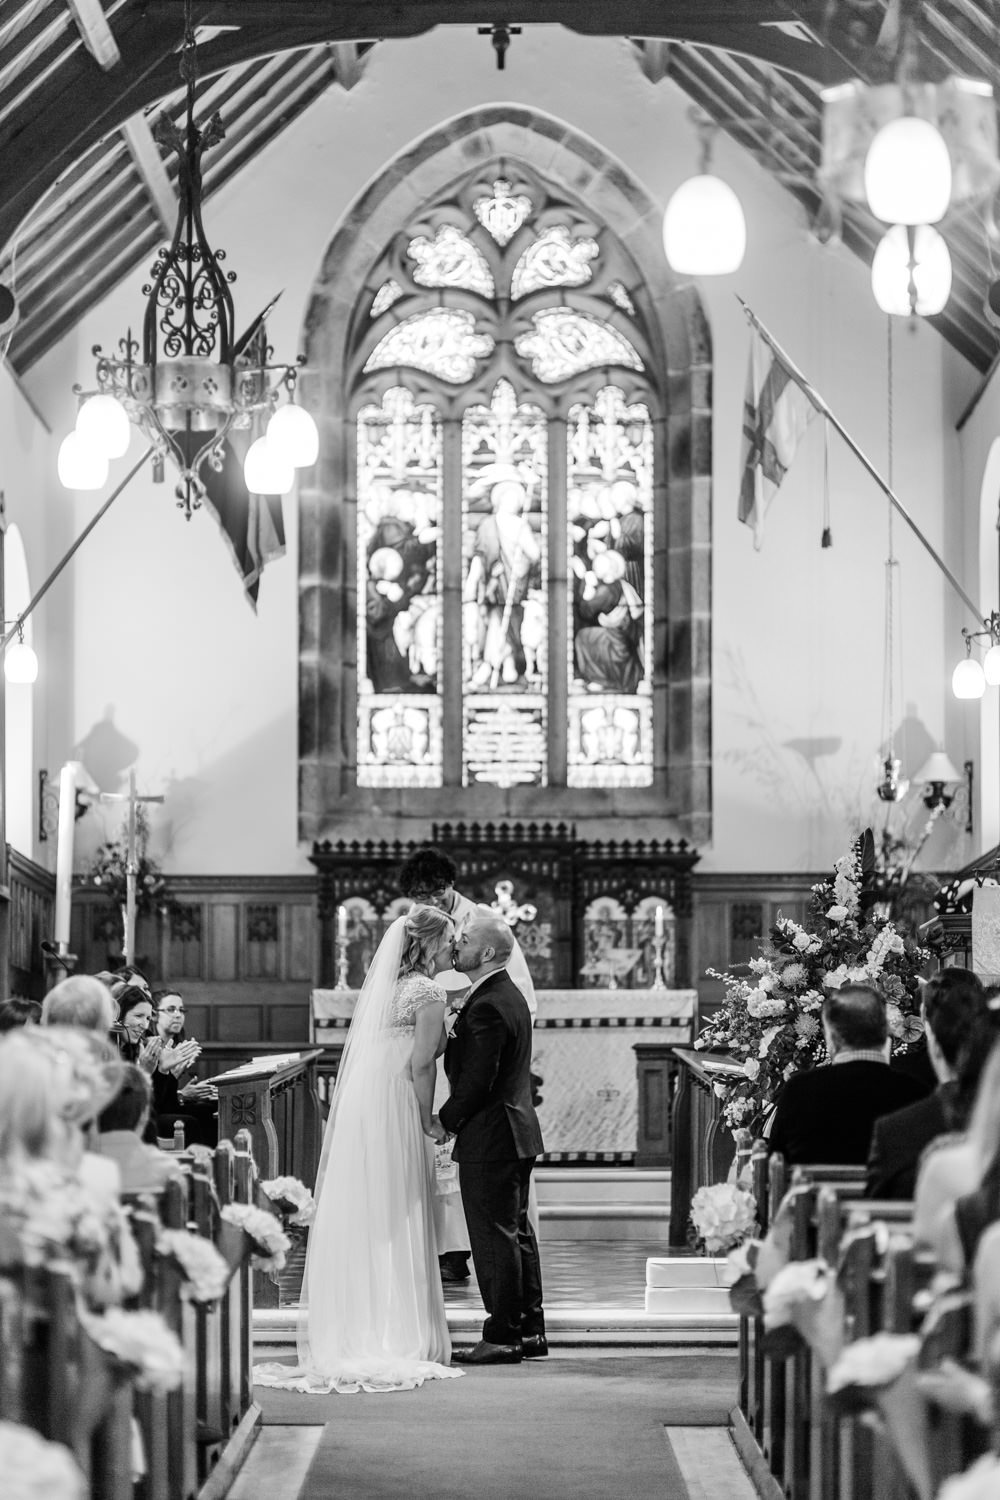 A bride and groom at St Peter's Church in Guernsey